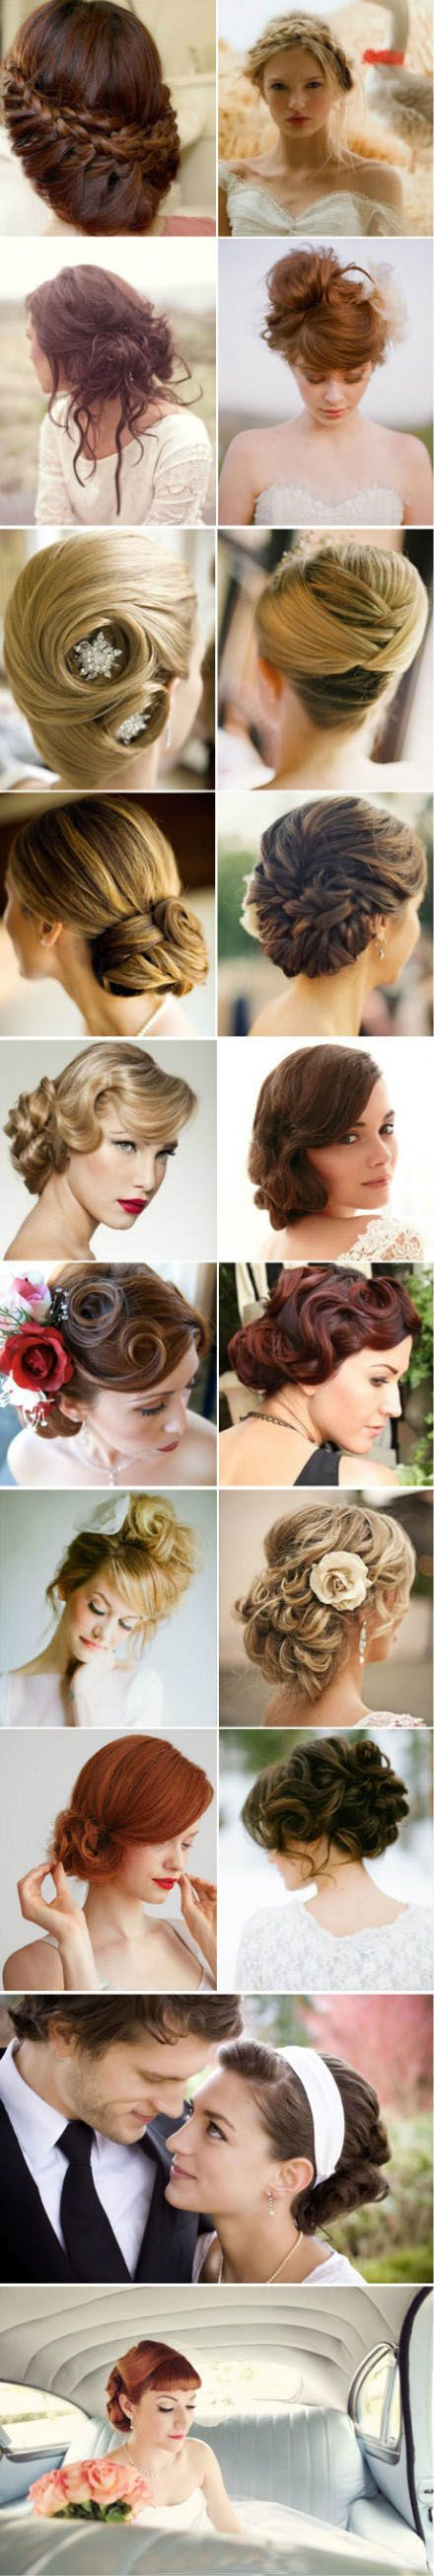 Best Classic Bride Images On Pinterest Bridal Hairstyles - Classic elegant hairstyle